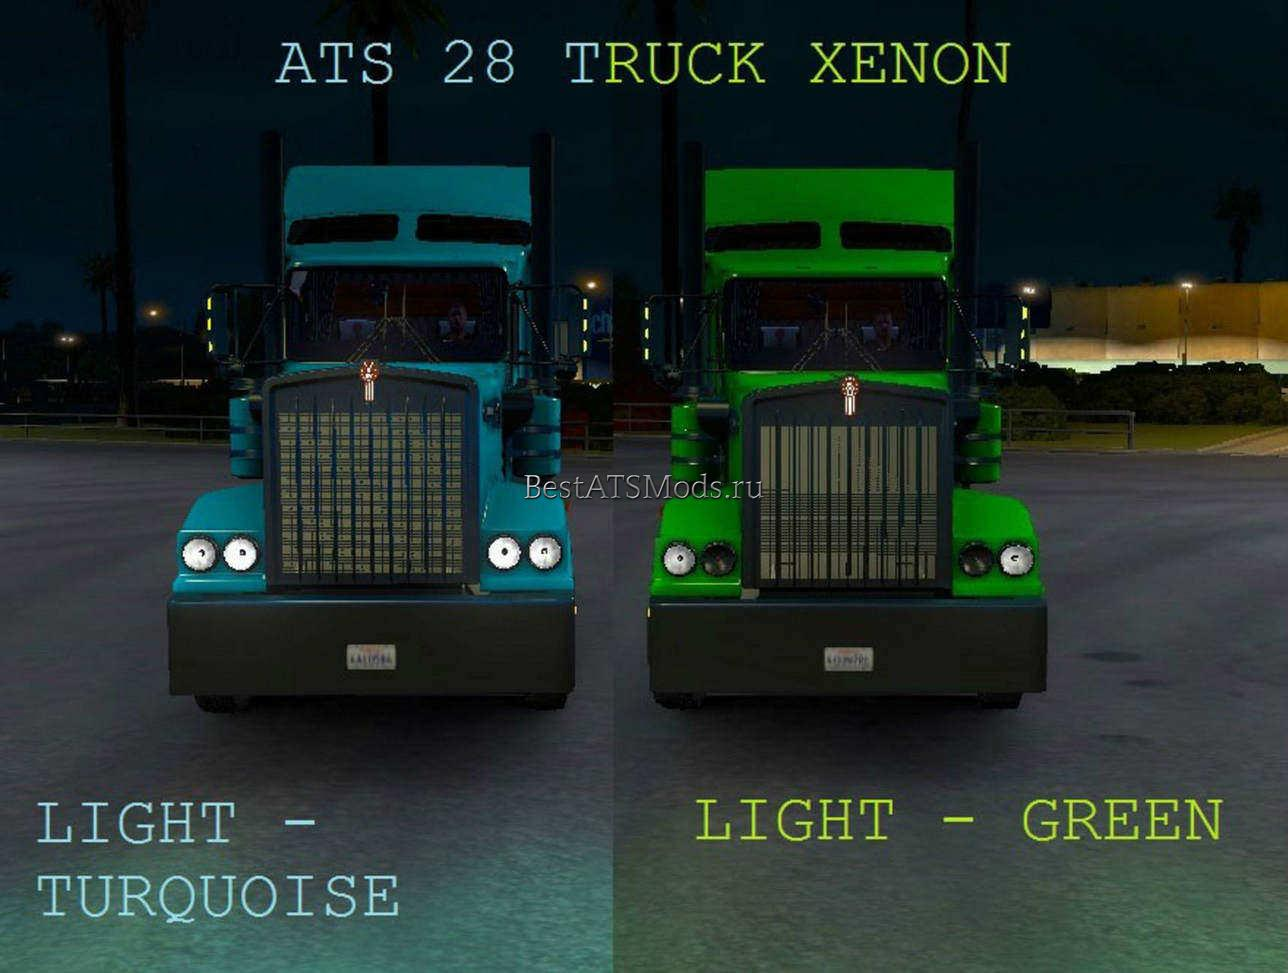 rsz_Мод_ксенон_trucks_xenon_light_turquoise__light_green_pack_v_30_mod_american_truck_simulator